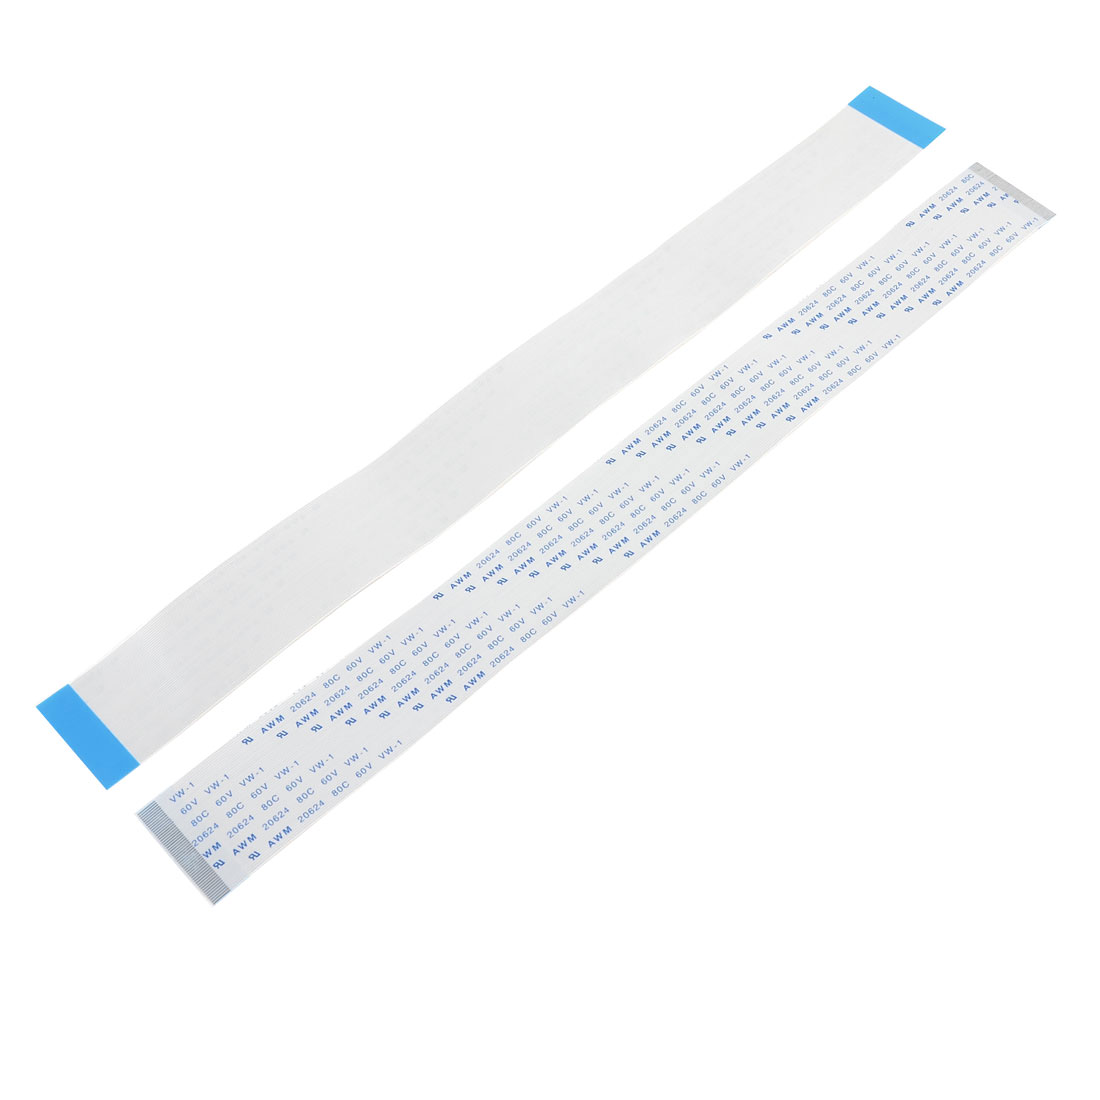 """10"""" Length LCD FFC 50 Pin Flexible Flat Cable 2 Pcs for PC Computer"""